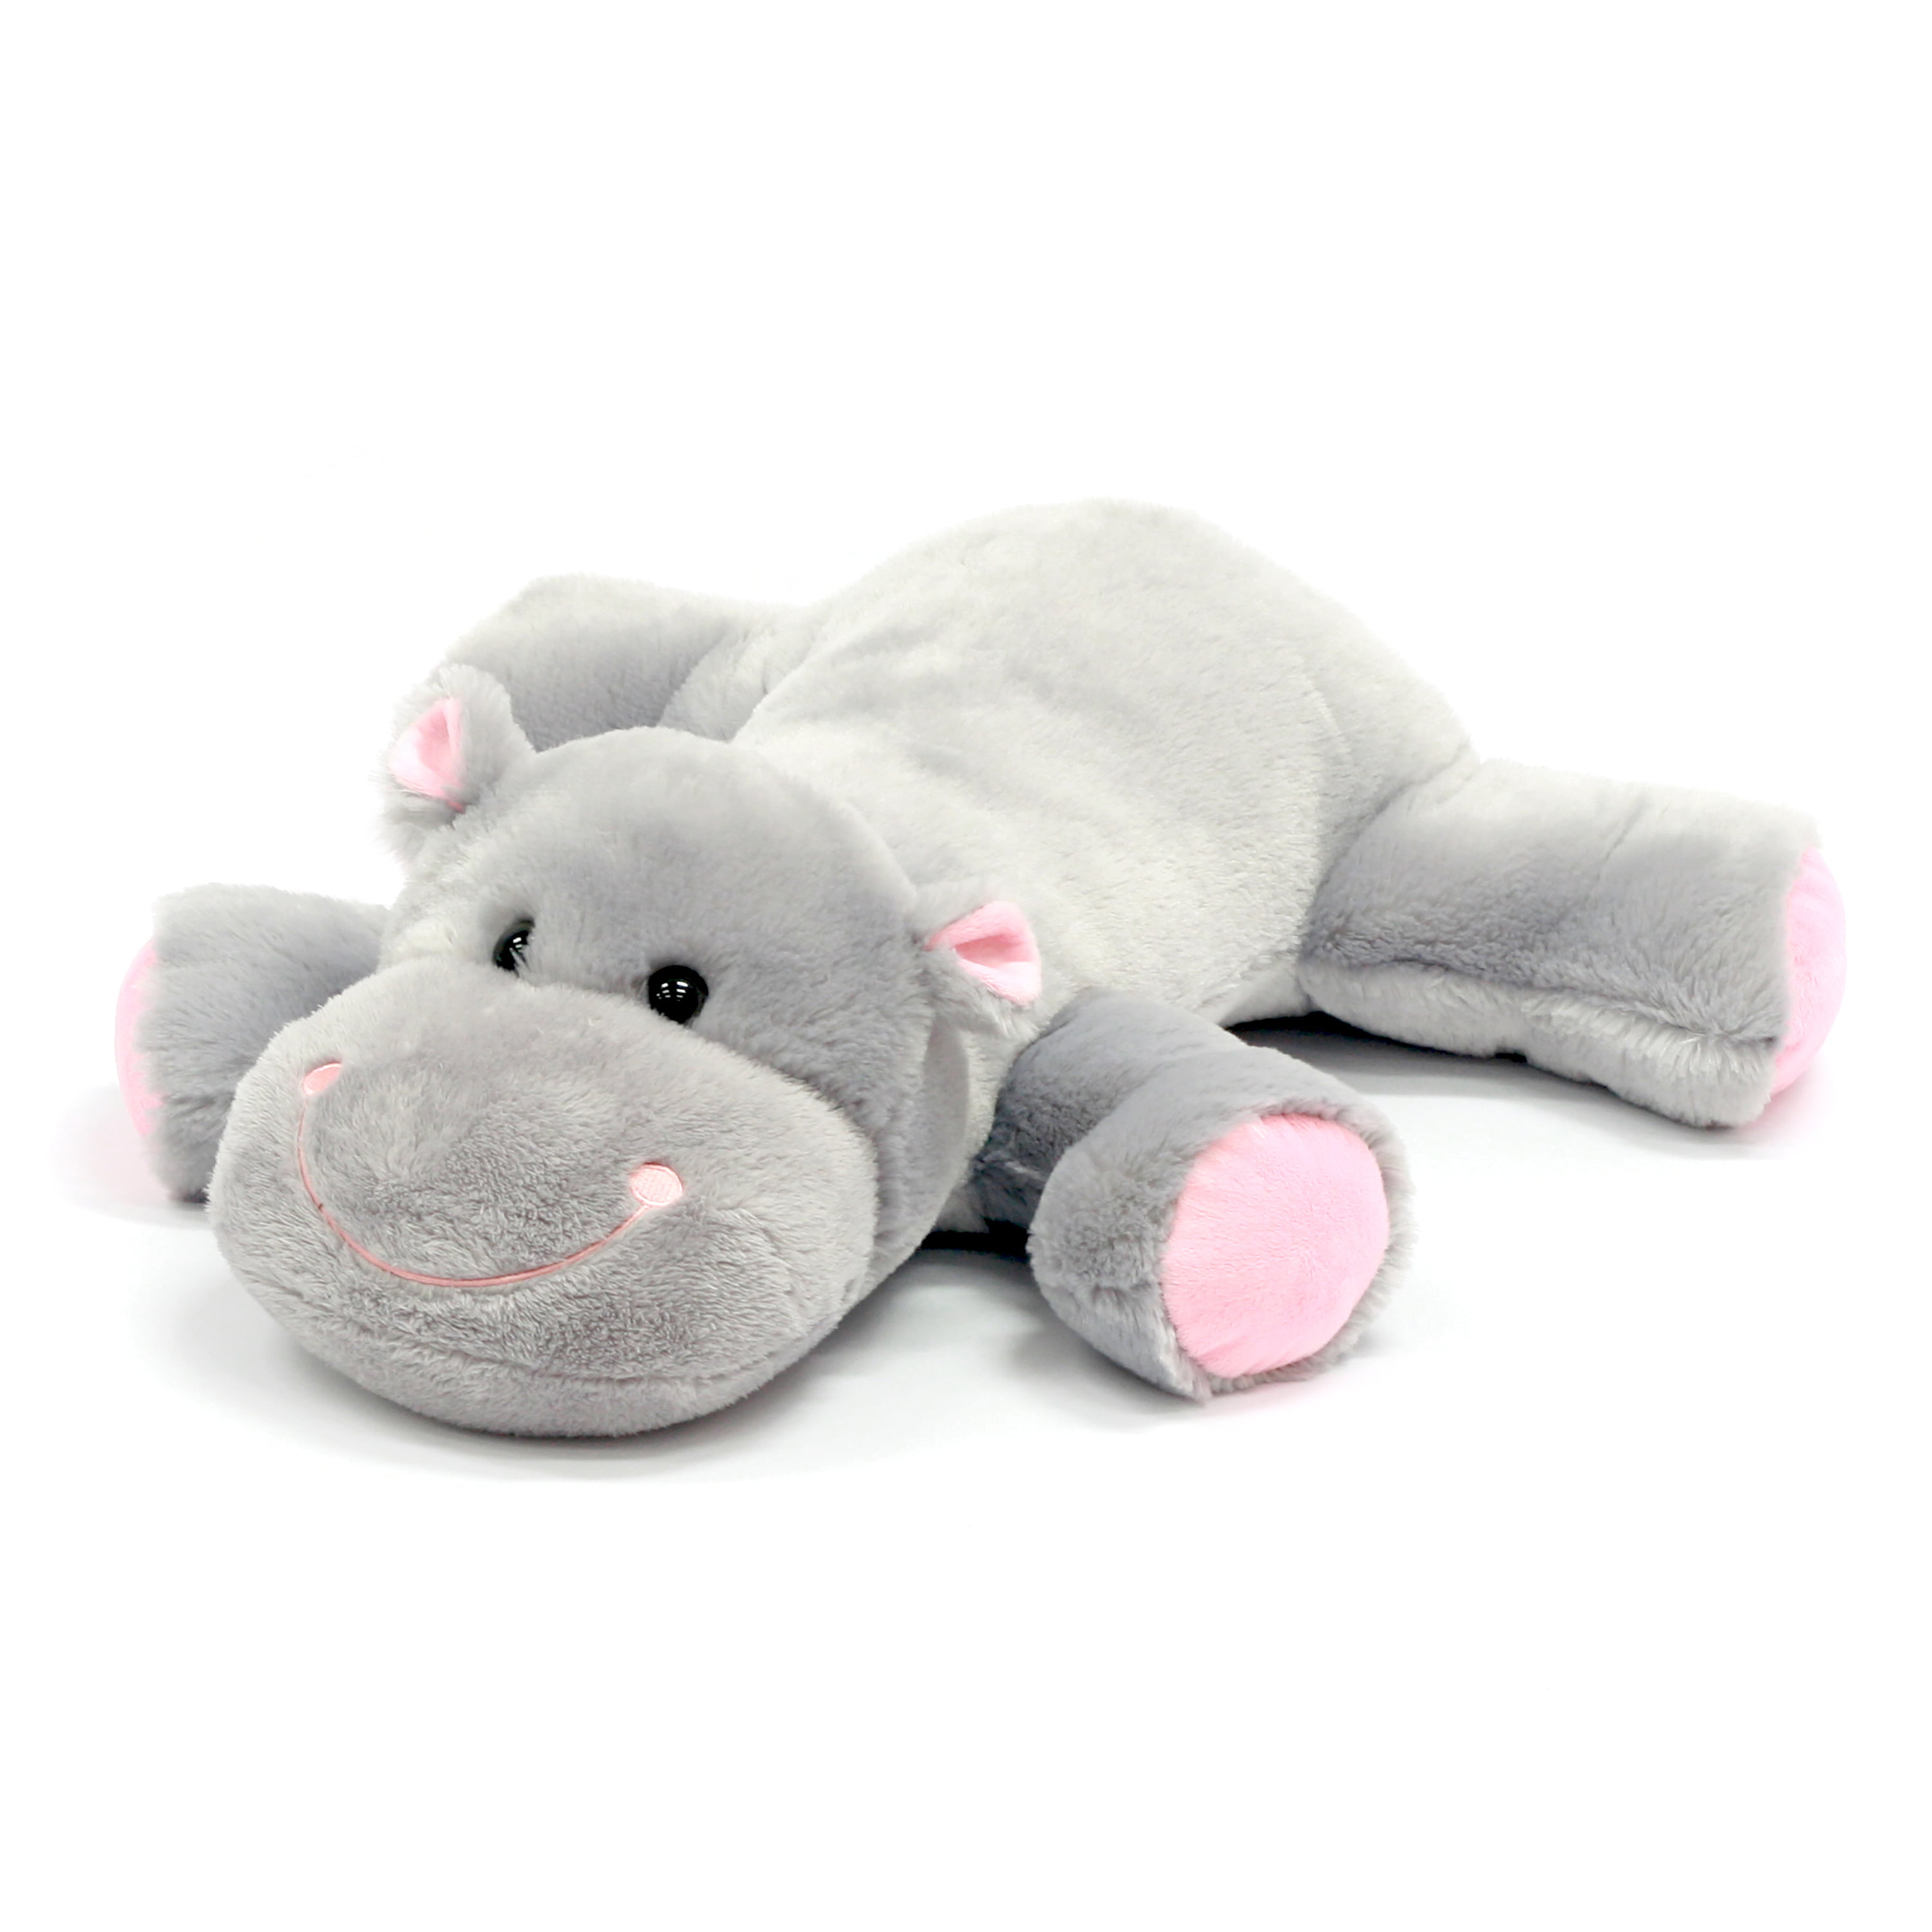 Easter 30 Inch Stuffed Large Floppy Animal Plush Hippo Walmart Com